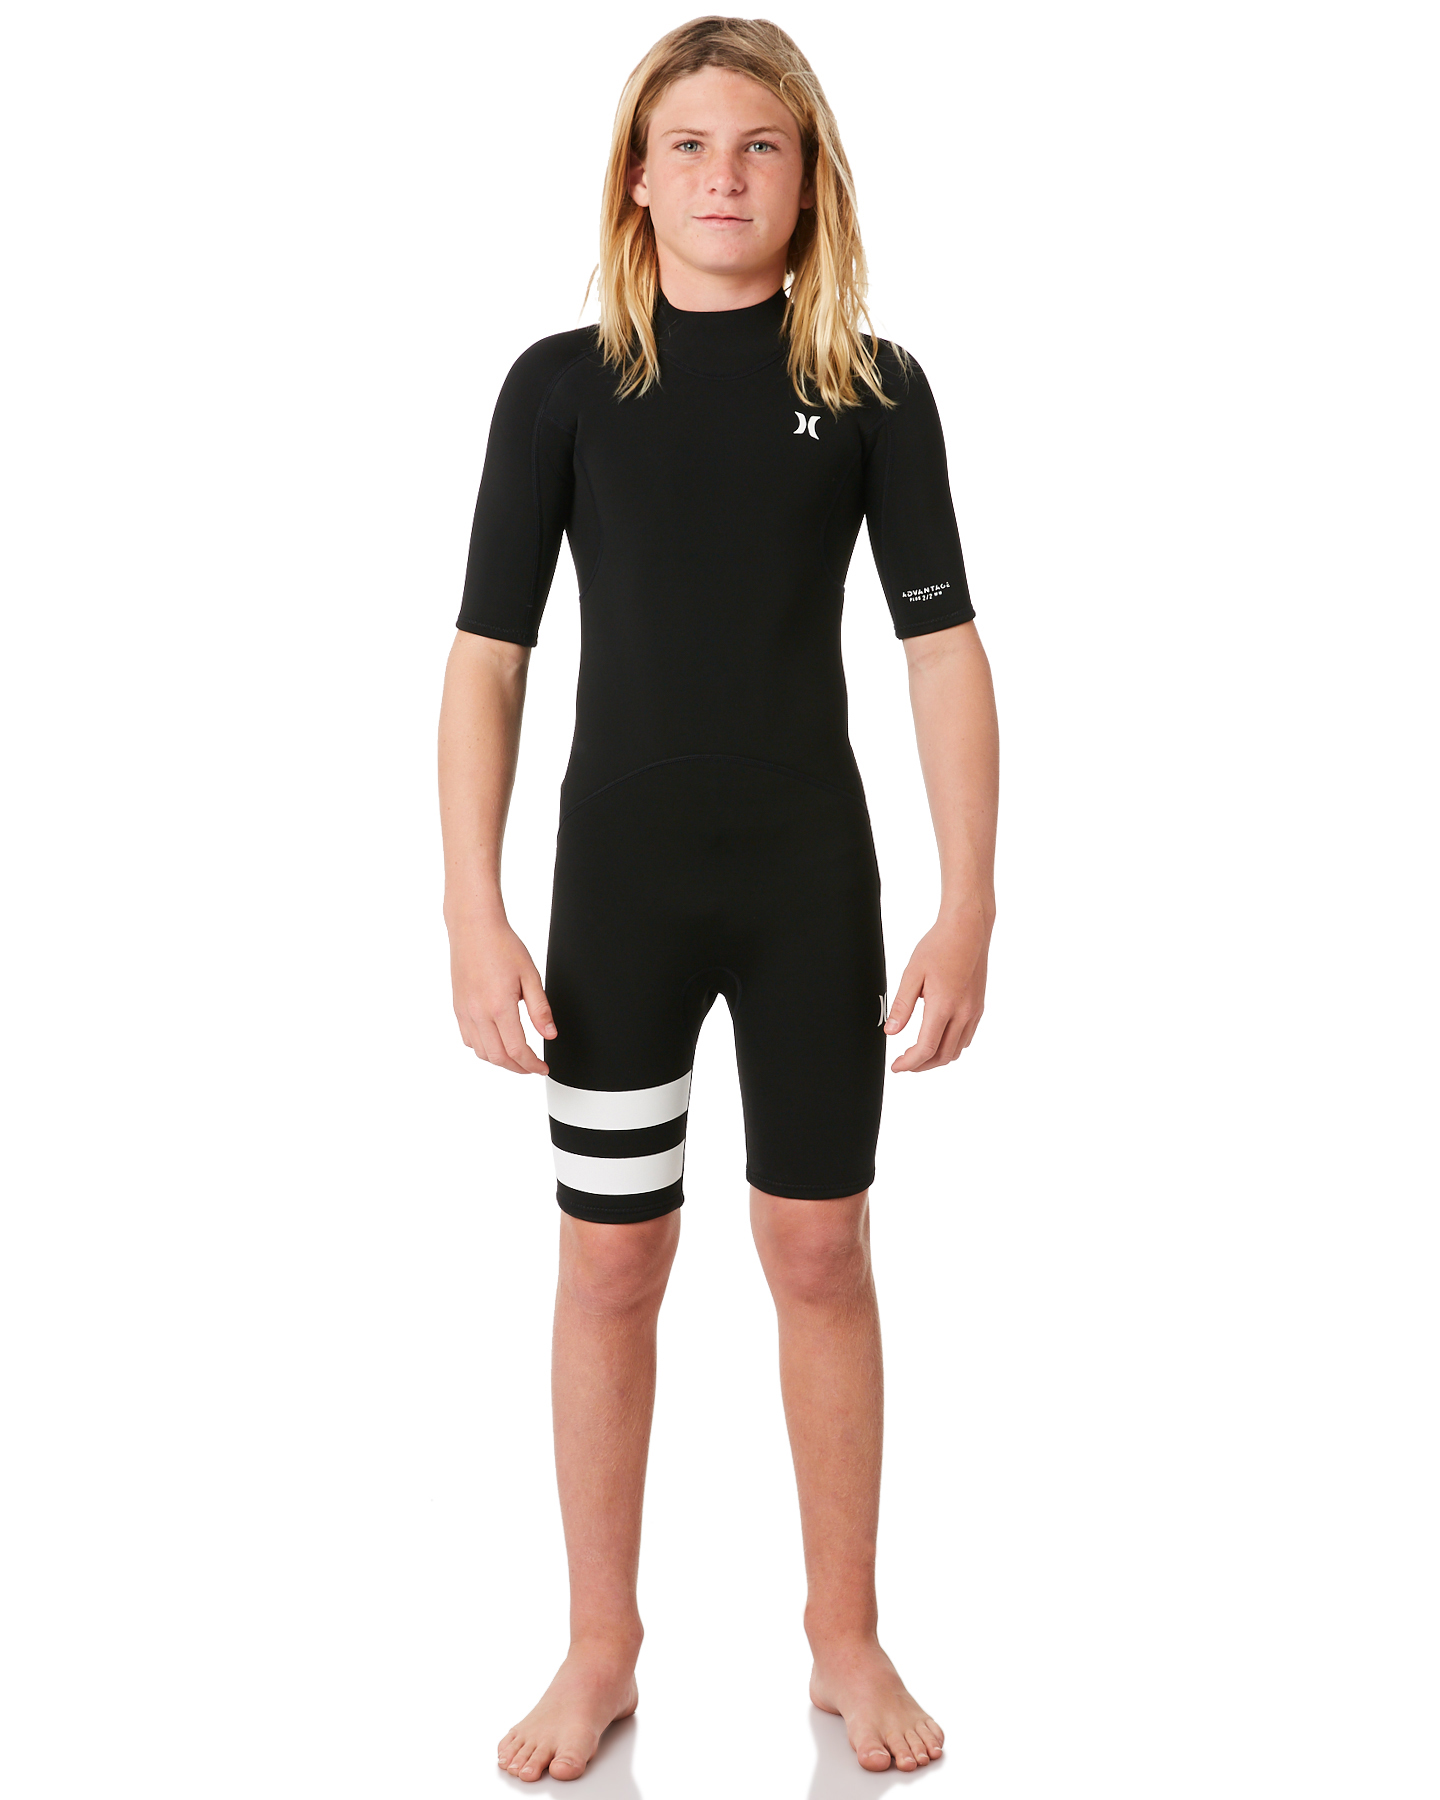 44366b5515 ... Surfing Wetsuits Size 10. Hurley Hurley Boys Advantage Springsuit Black  Hurley Boys Advantage Springsuit Black